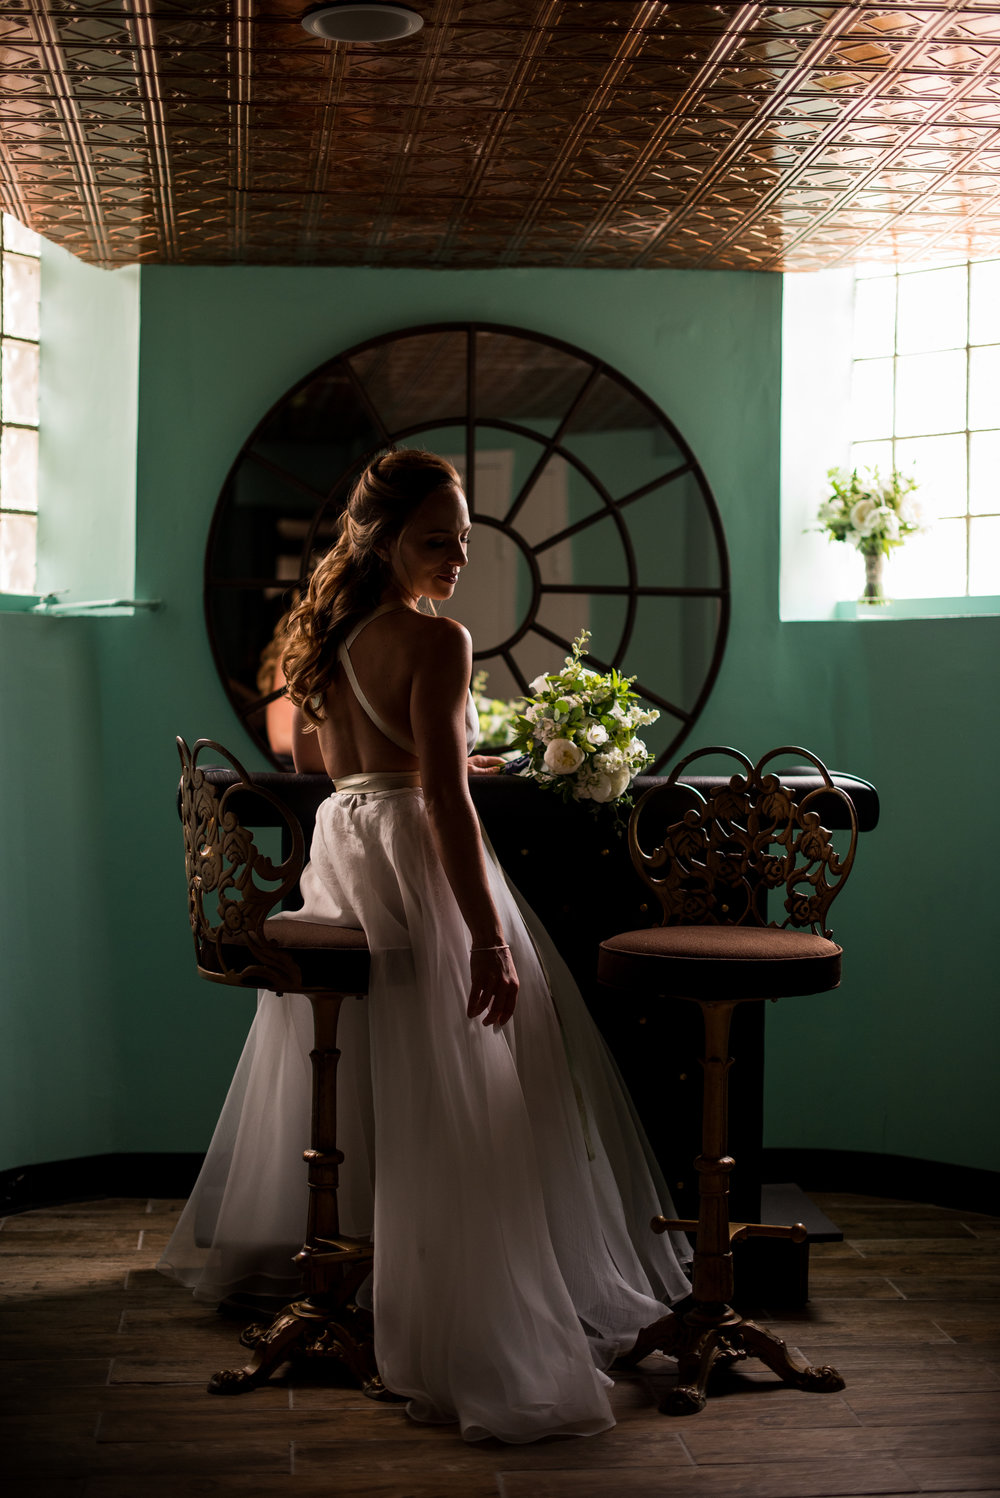 st-augustine-photographer-vermont-photographer-weddings-sarah-annay-photography.jpg